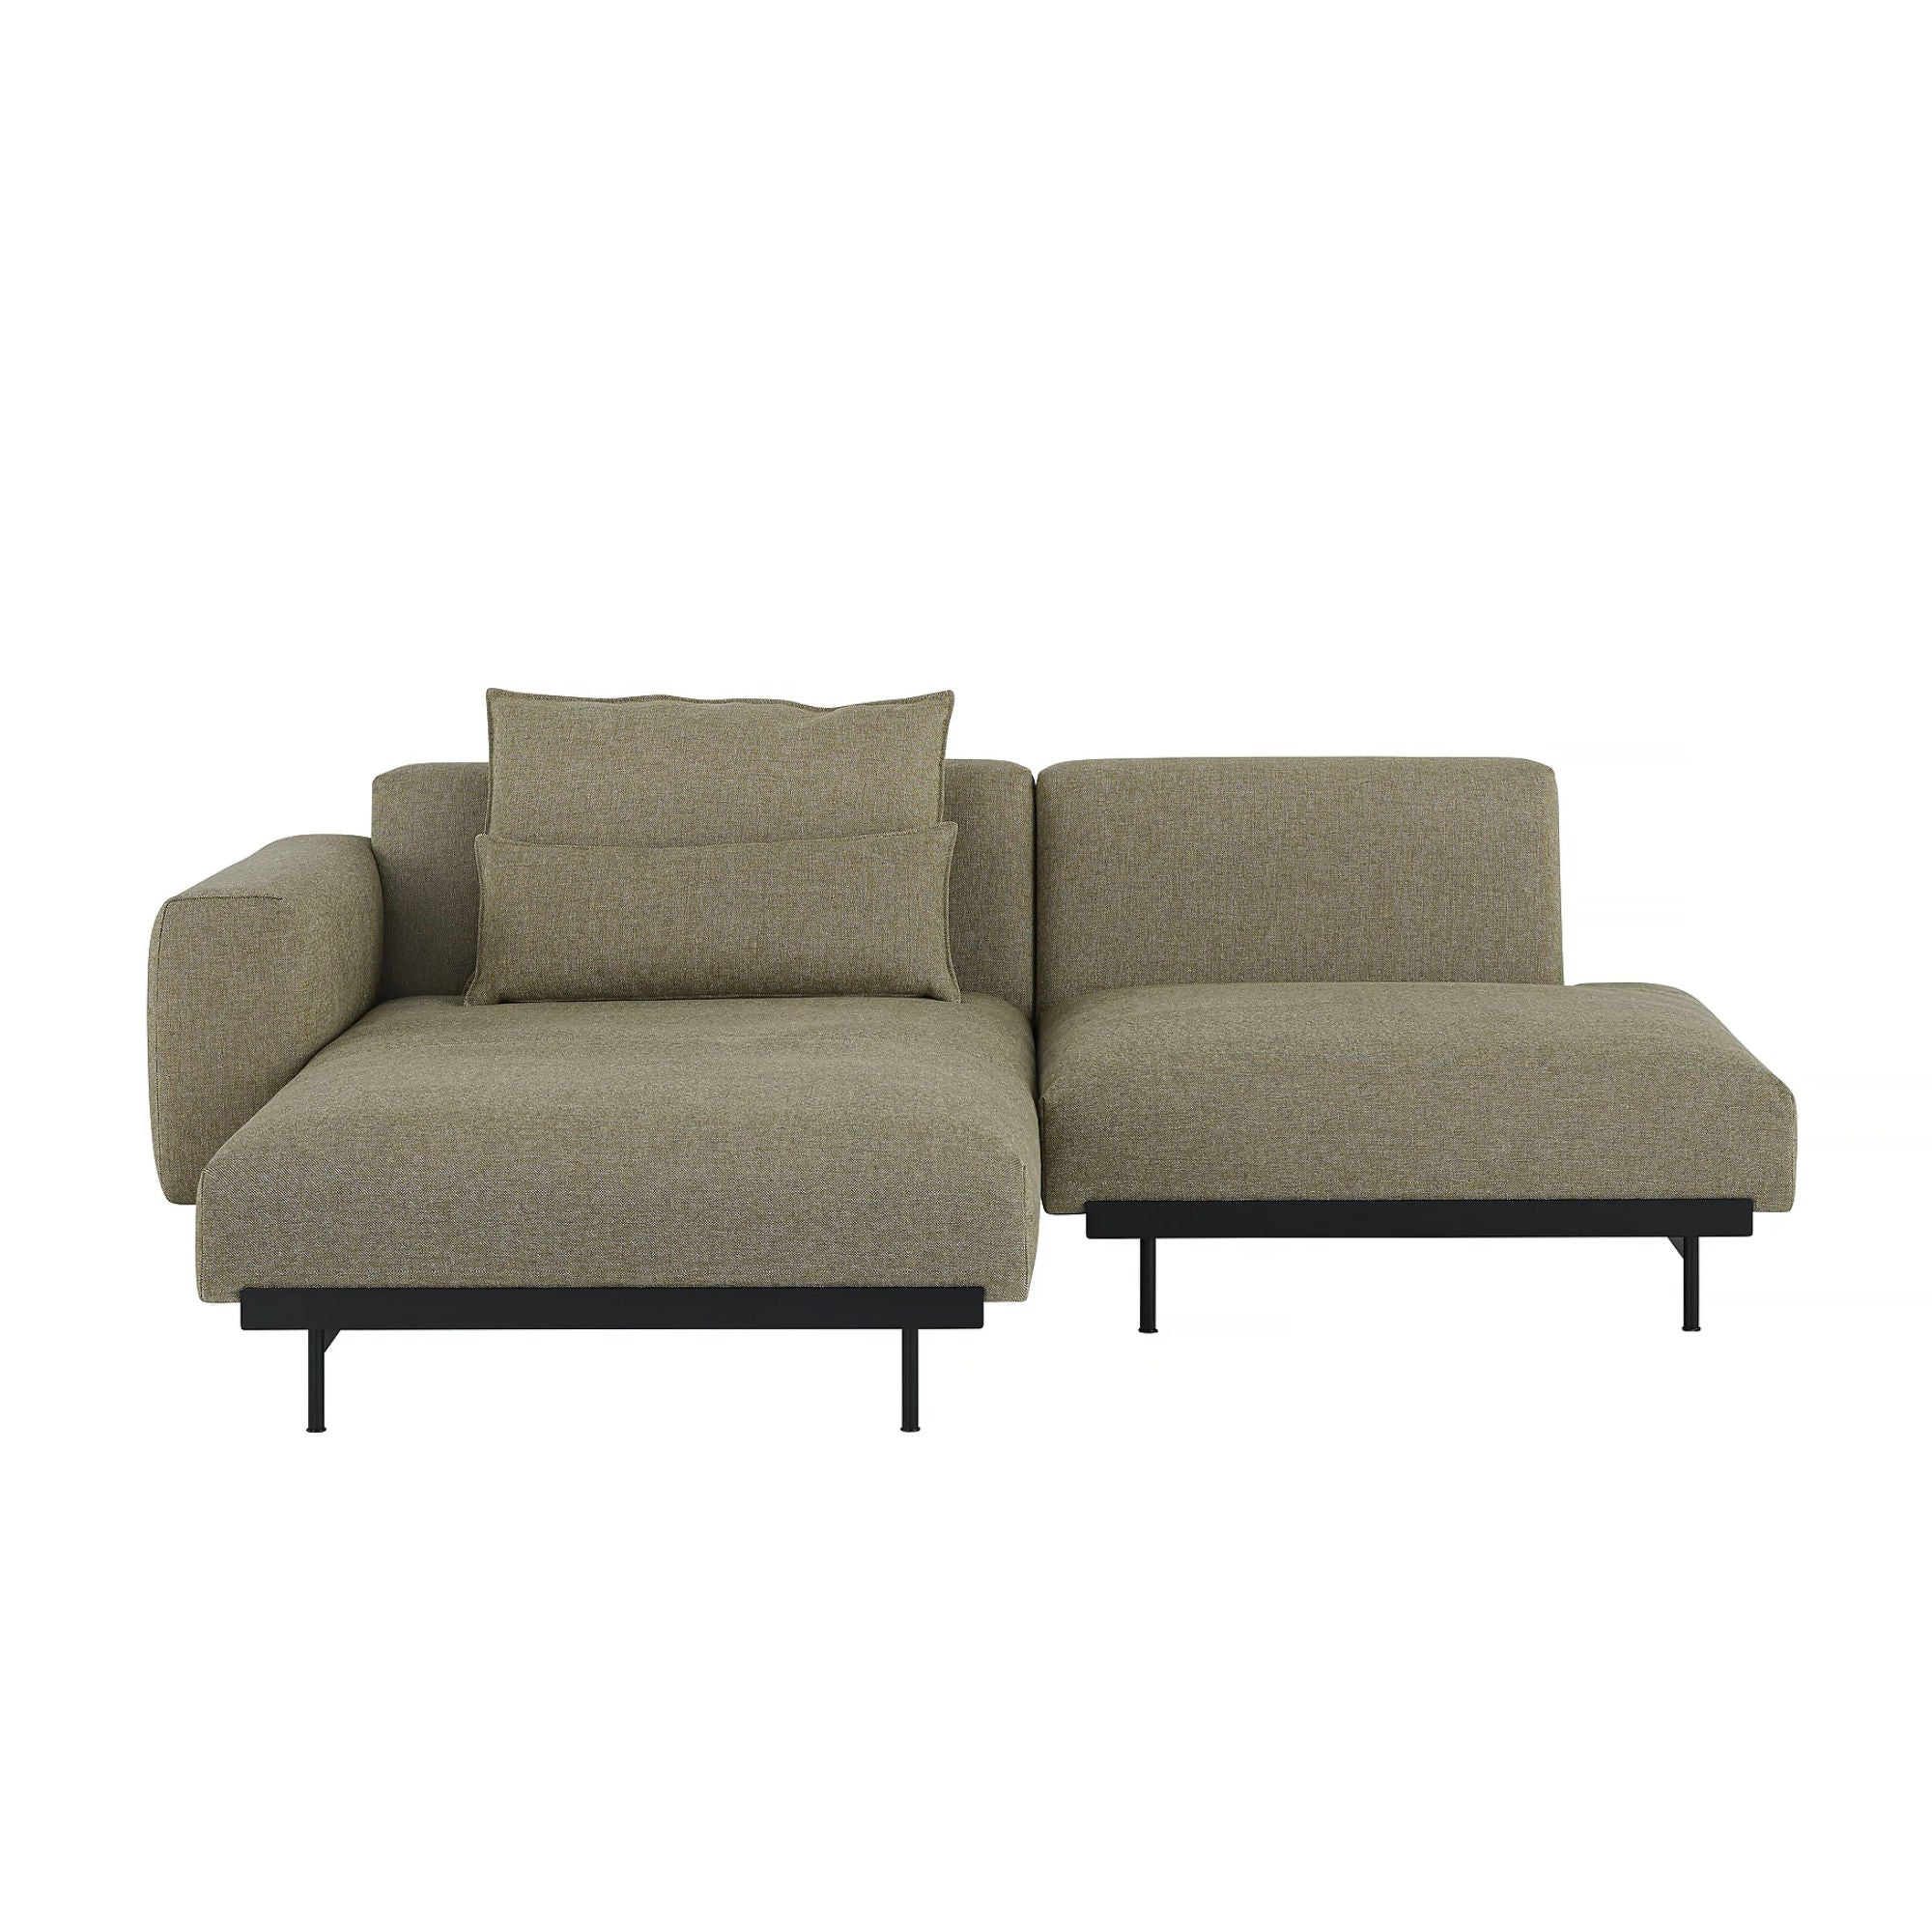 Muuto In Situ Modular Sofa 2-Seater Configuration 6/7 , Clay 15